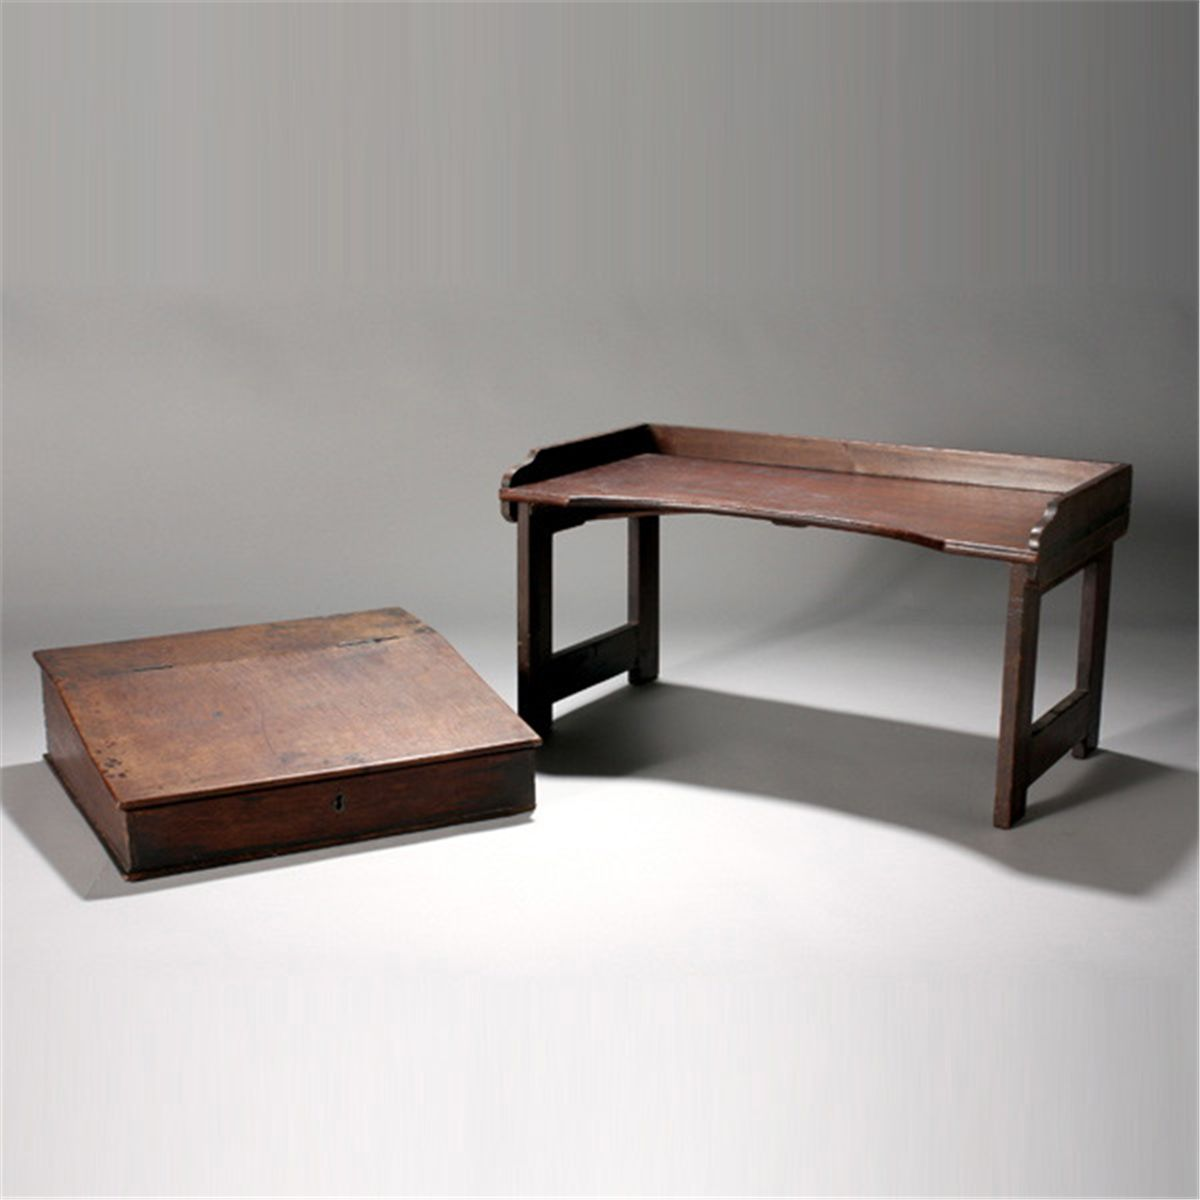 Victorian Lap Desk Together With A Folding Tray